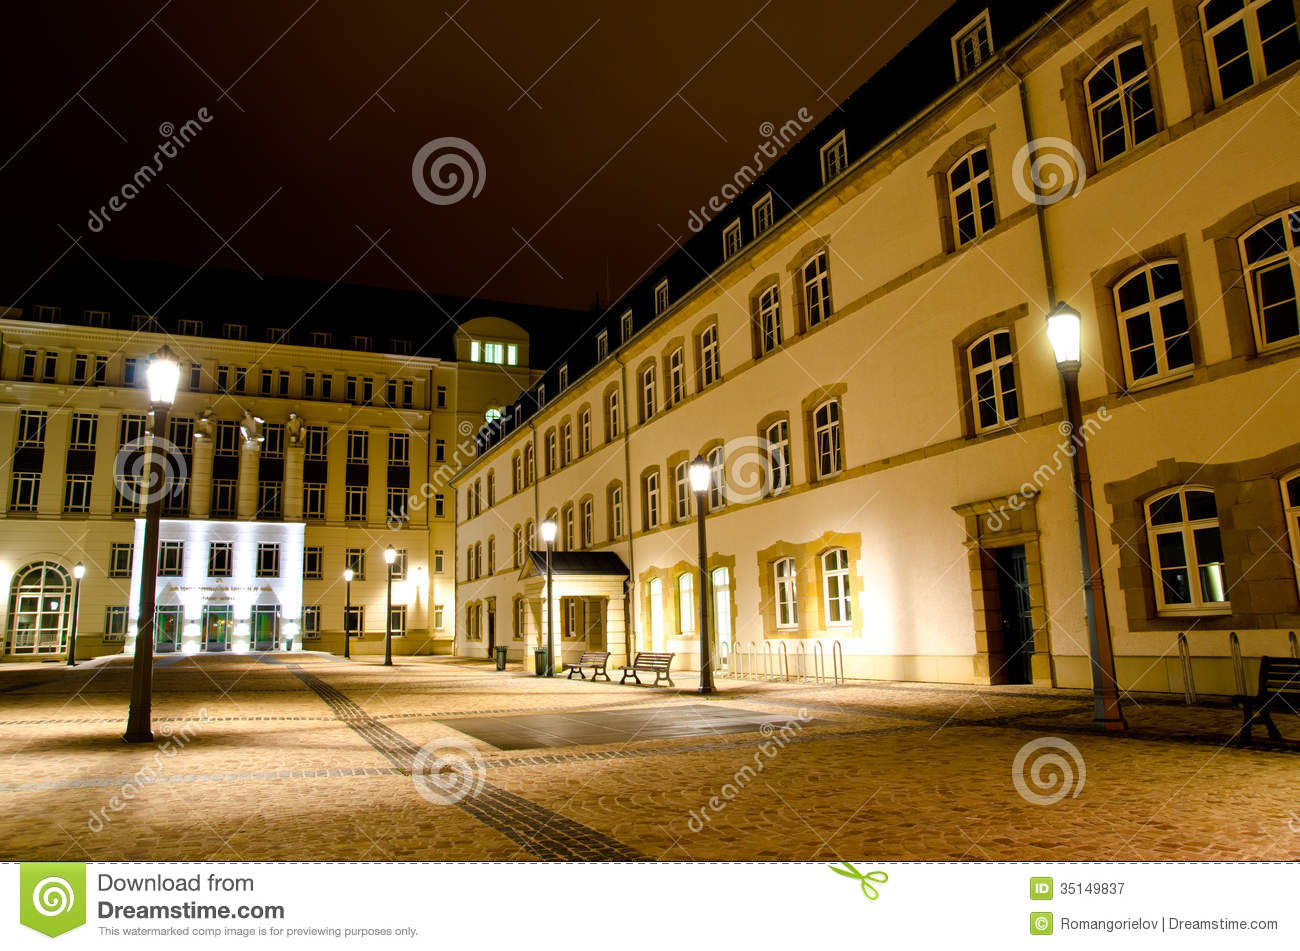 House in luxembourg royalty free stock photography image for Luxembourg house